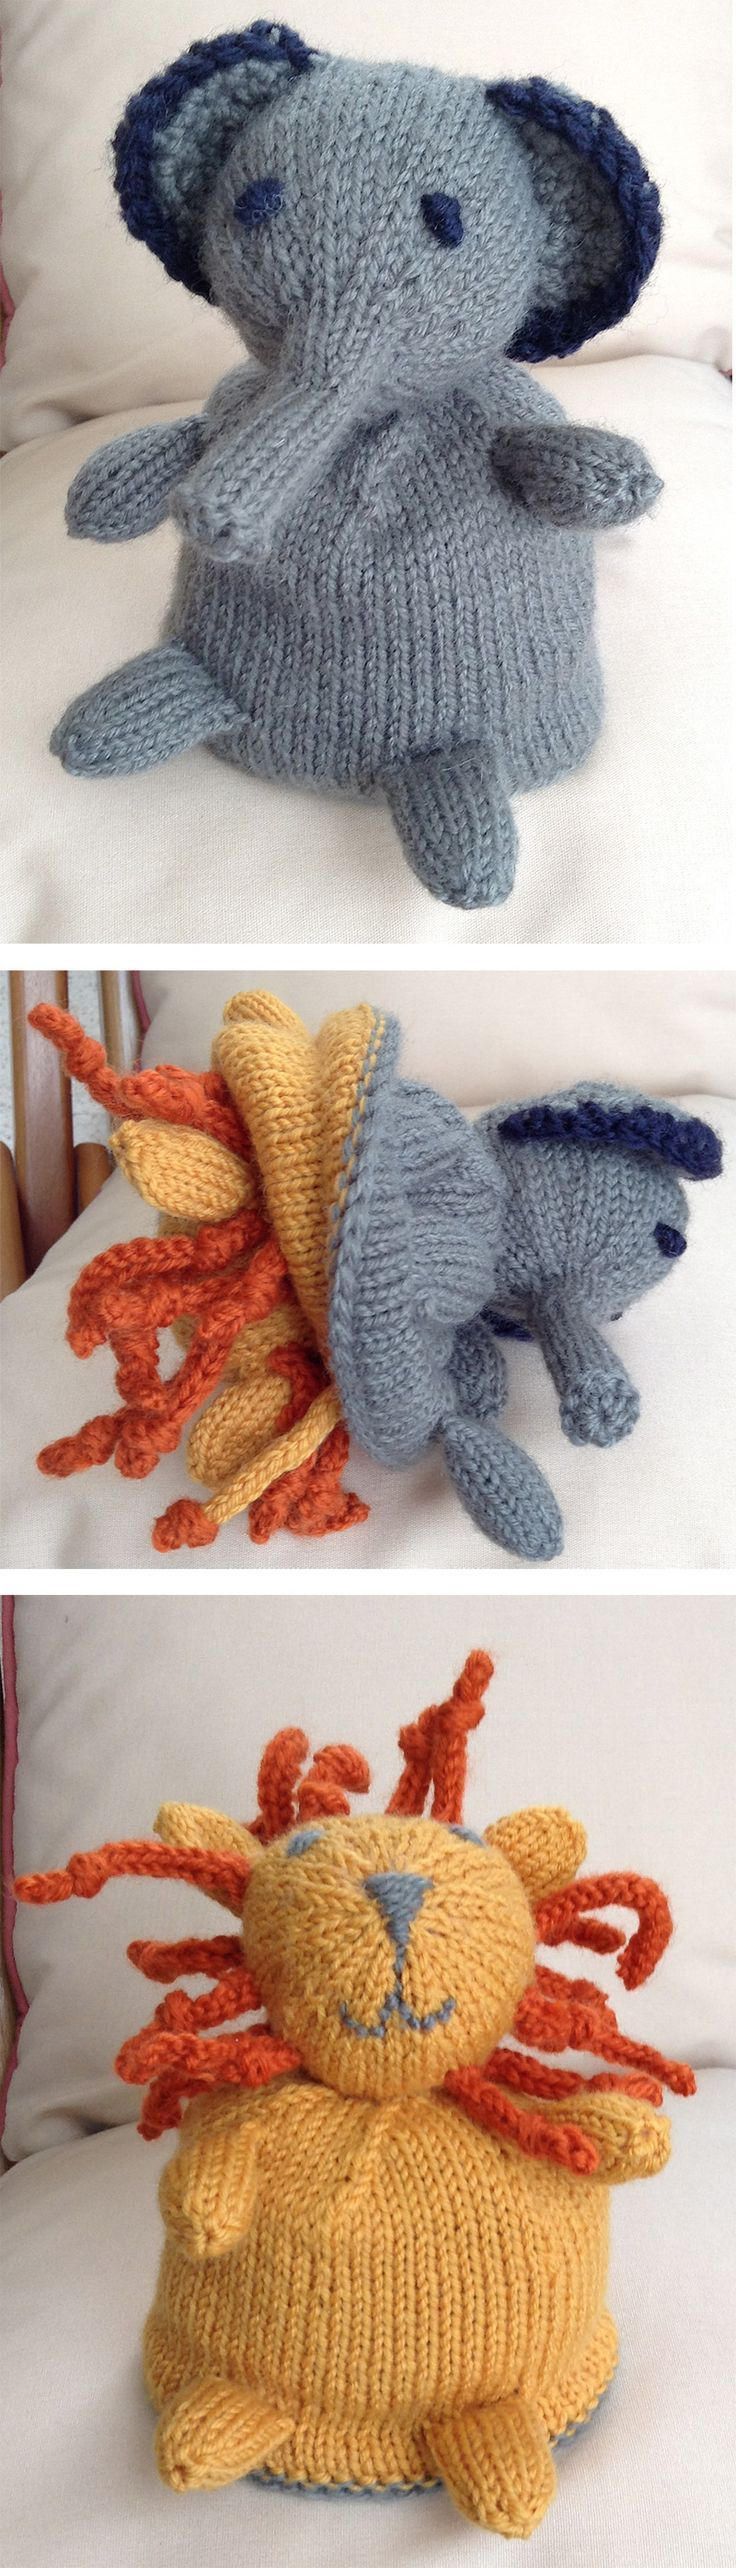 25+ best ideas about Knit animals on Pinterest Knitted animals, Crochet ani...